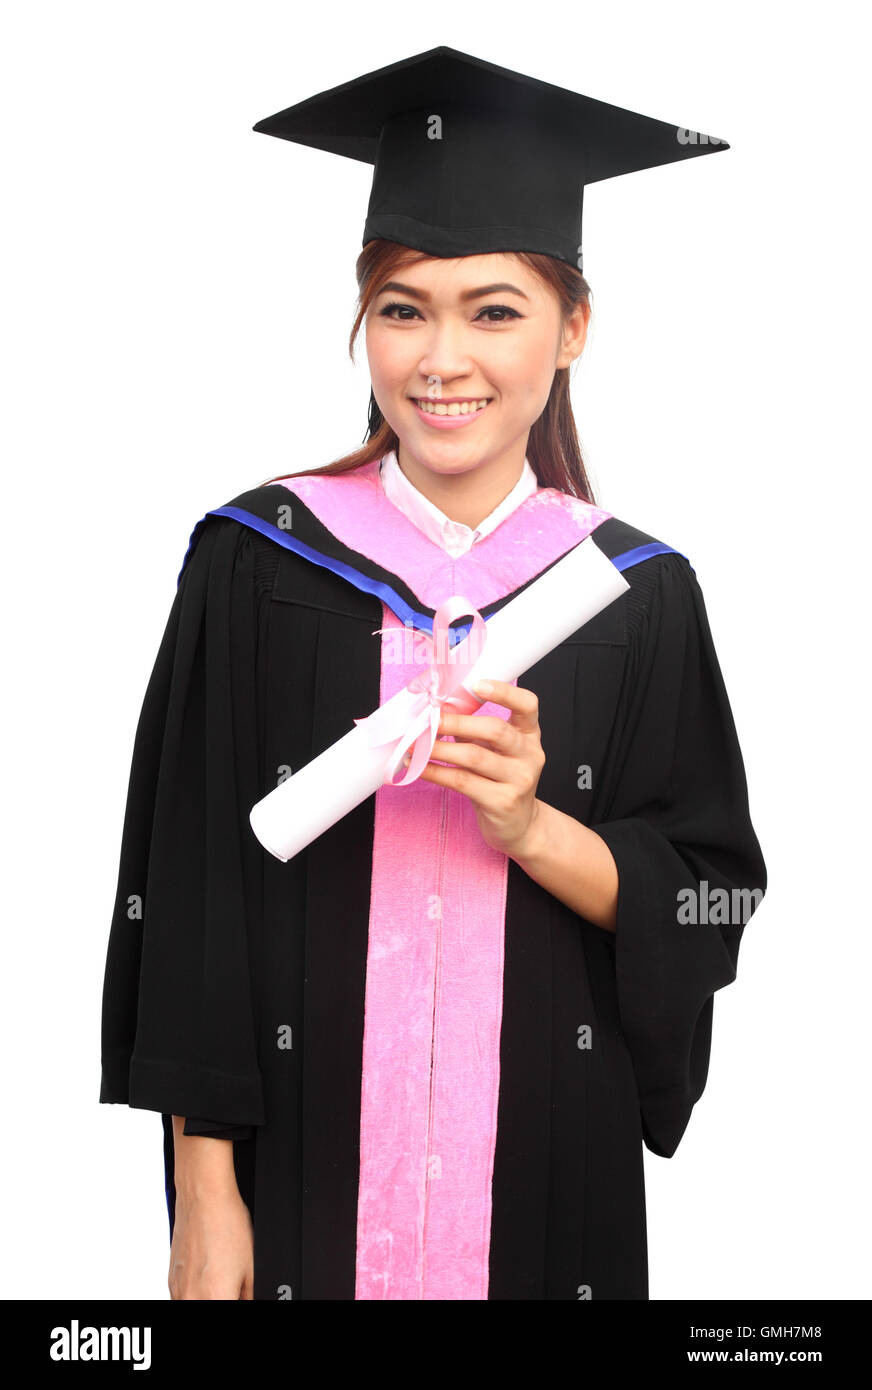 20e6c969ea7 woman with graduation cap and gown with arm raised holding diplo ...